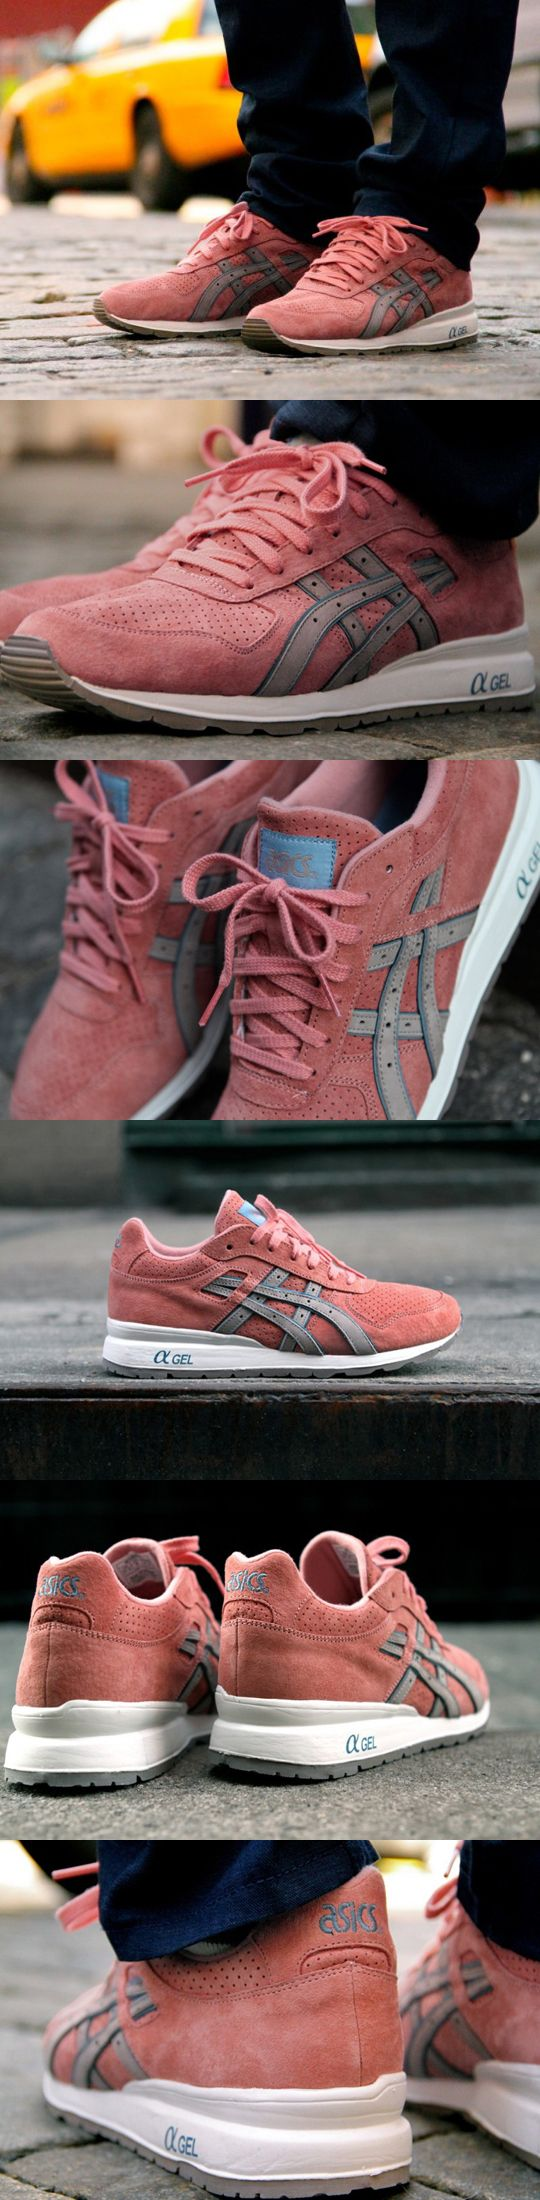 "Asics GT-II ""Rose Gold"" x Ronnie Fieg"